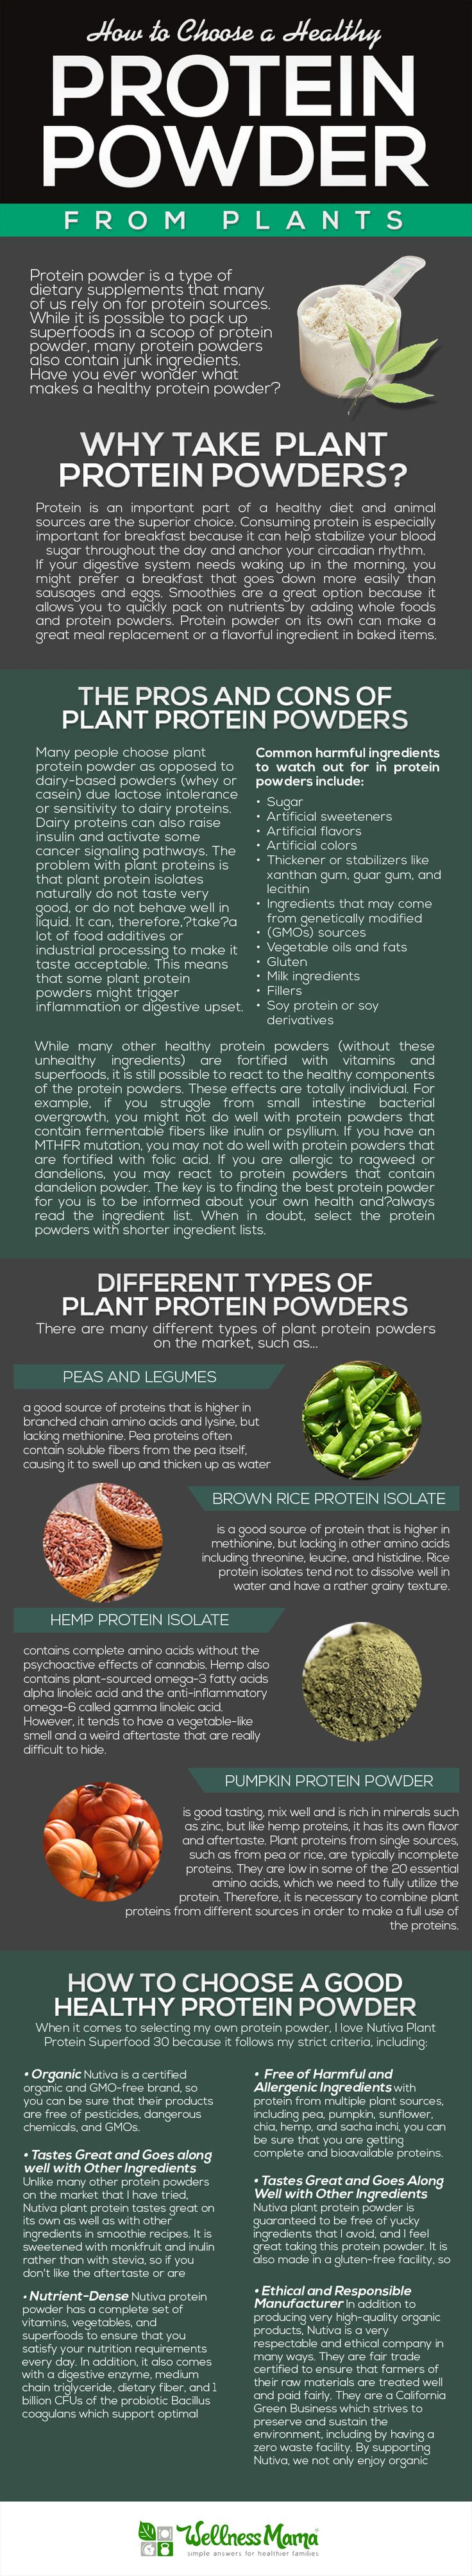 Plant-based protein powder can taste pretty bland and have some sneaky bad ingredients. Find out how to choose a good protein powder without the junk!